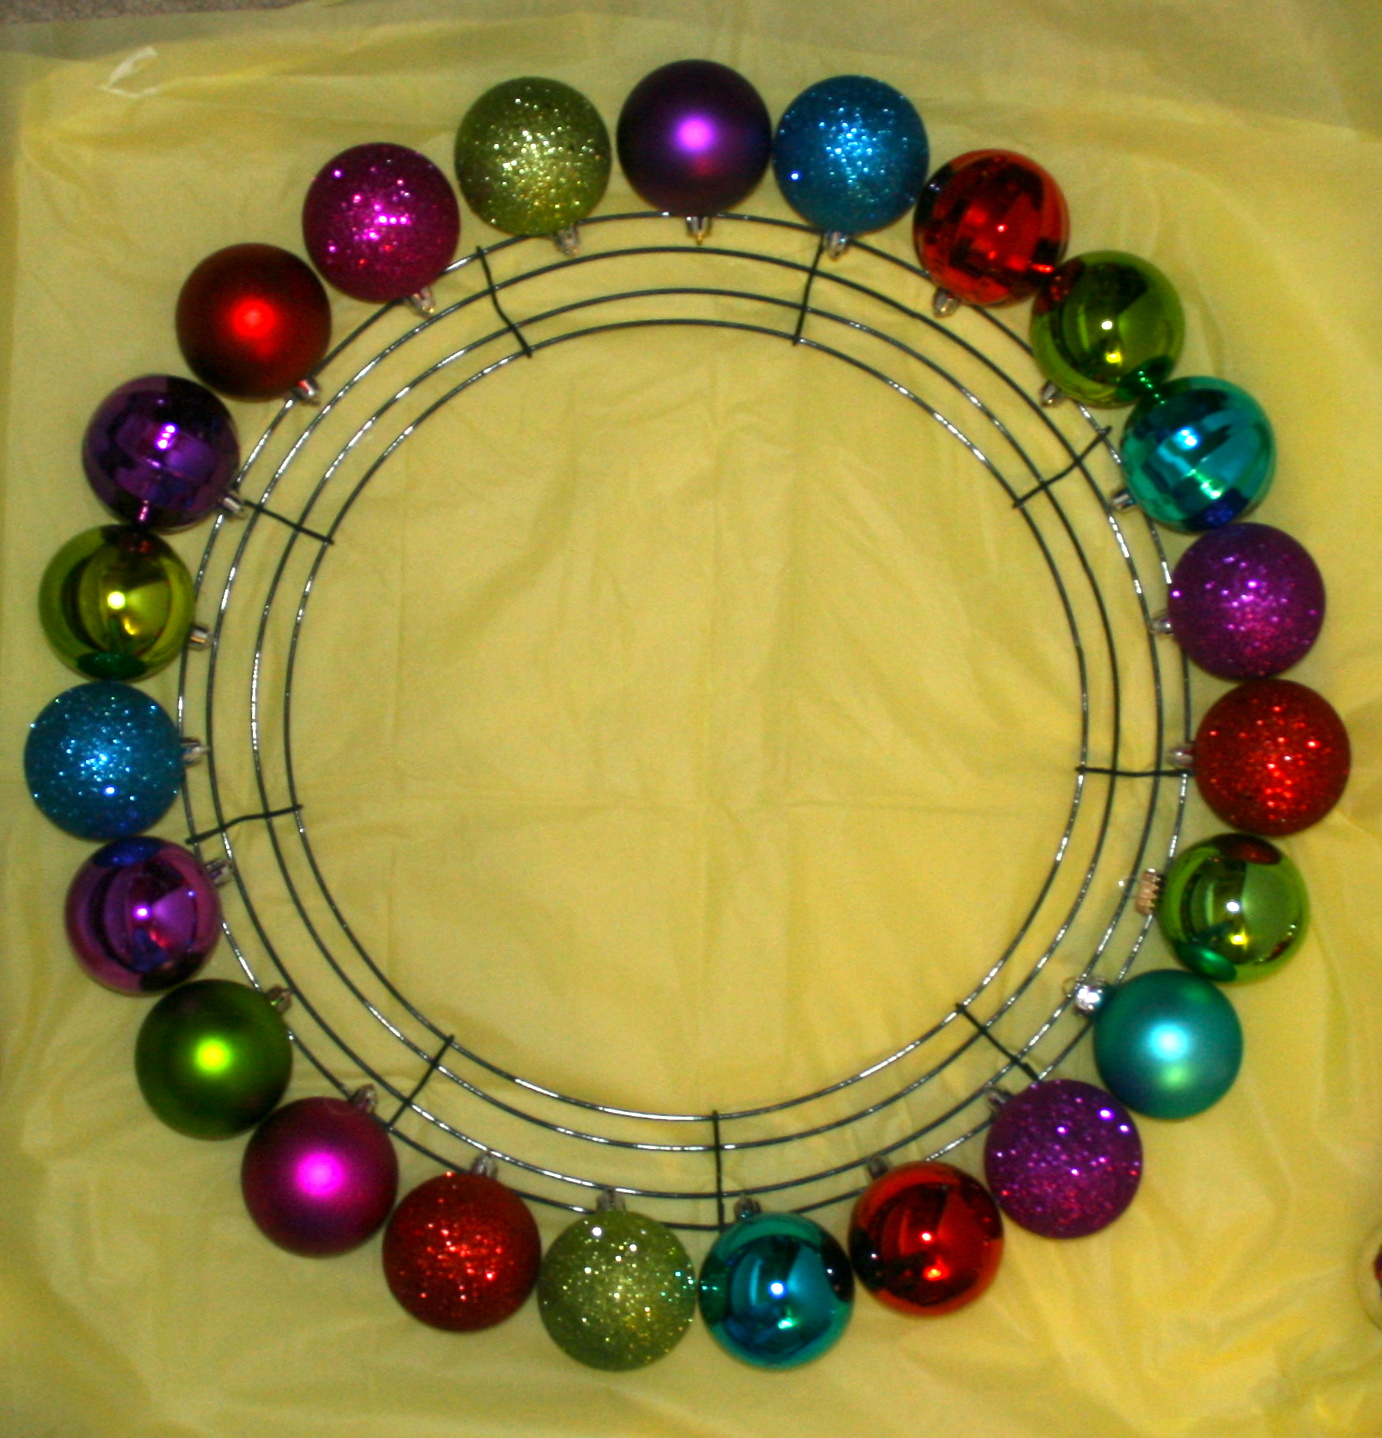 Smart-Bottom Enterprises: Christmas Ornament Wreath